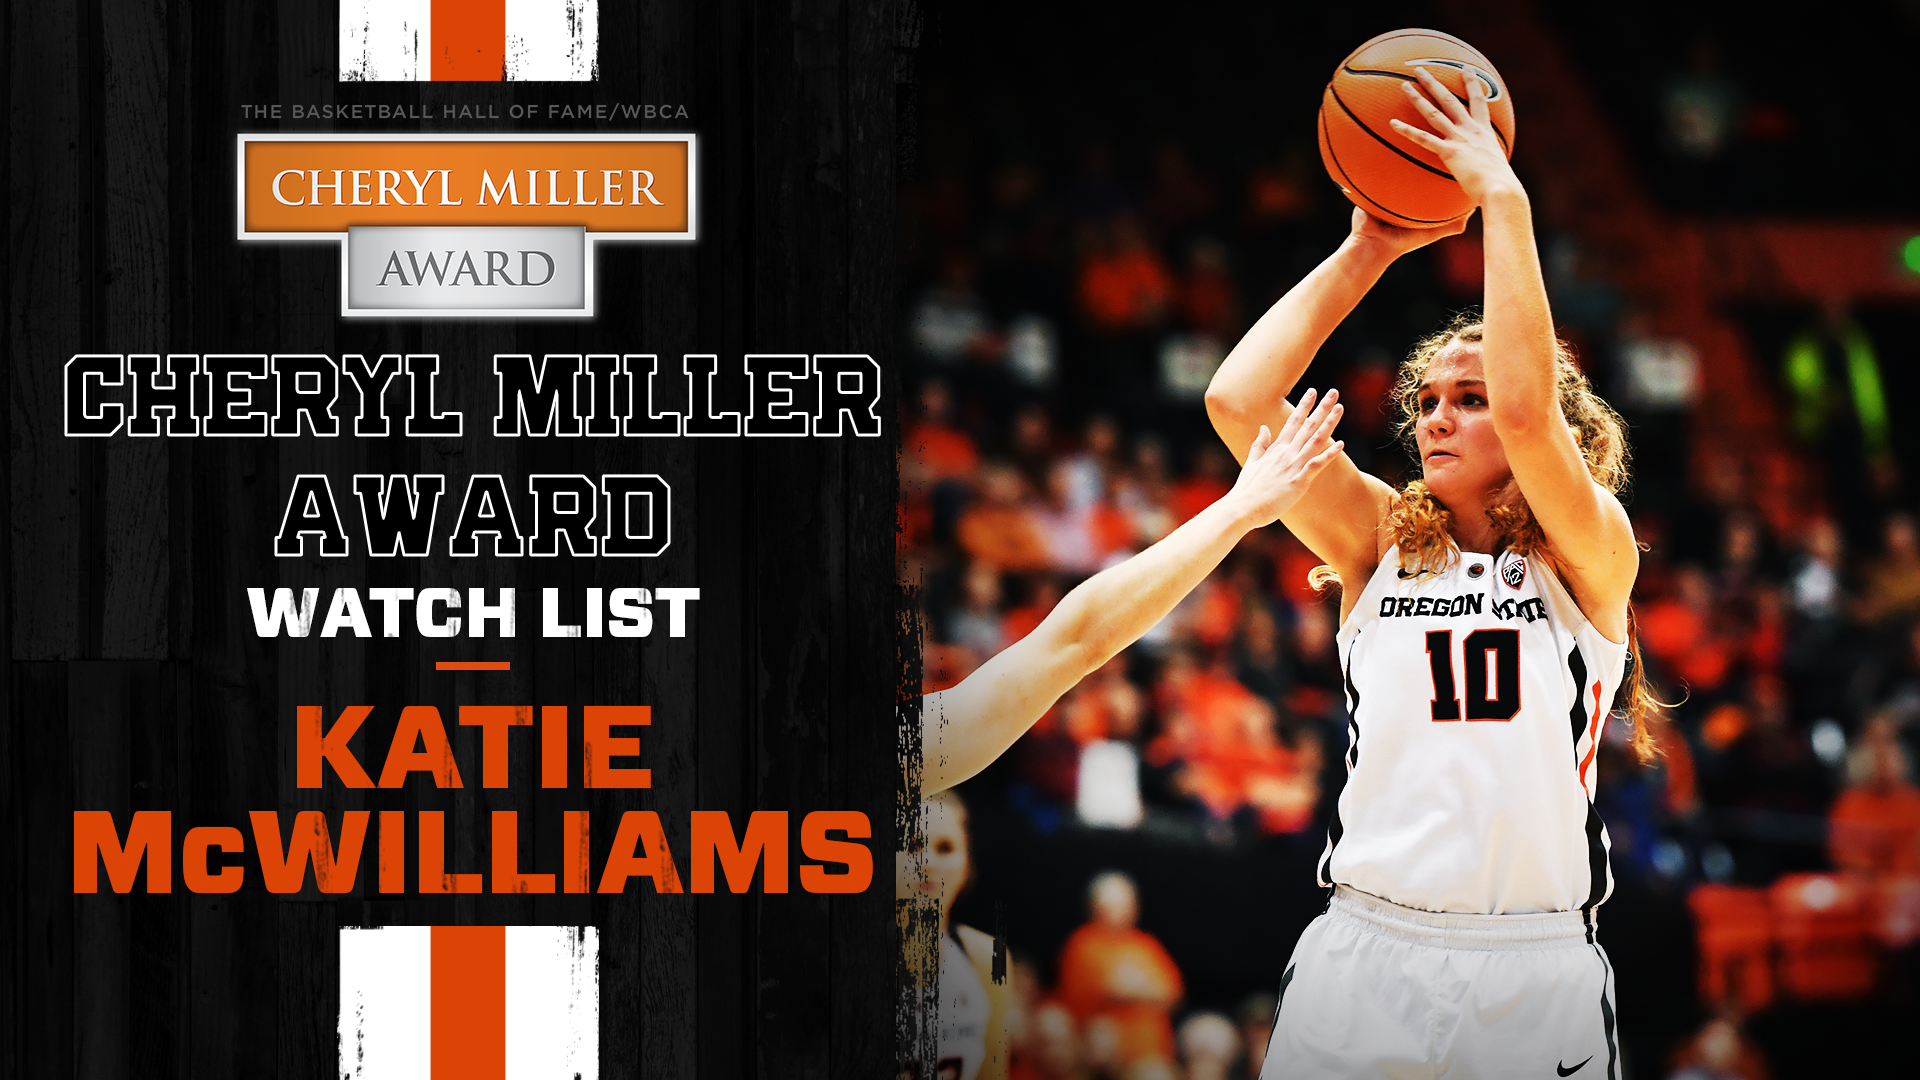 mcwilliams named to miller award watch list - oregon state